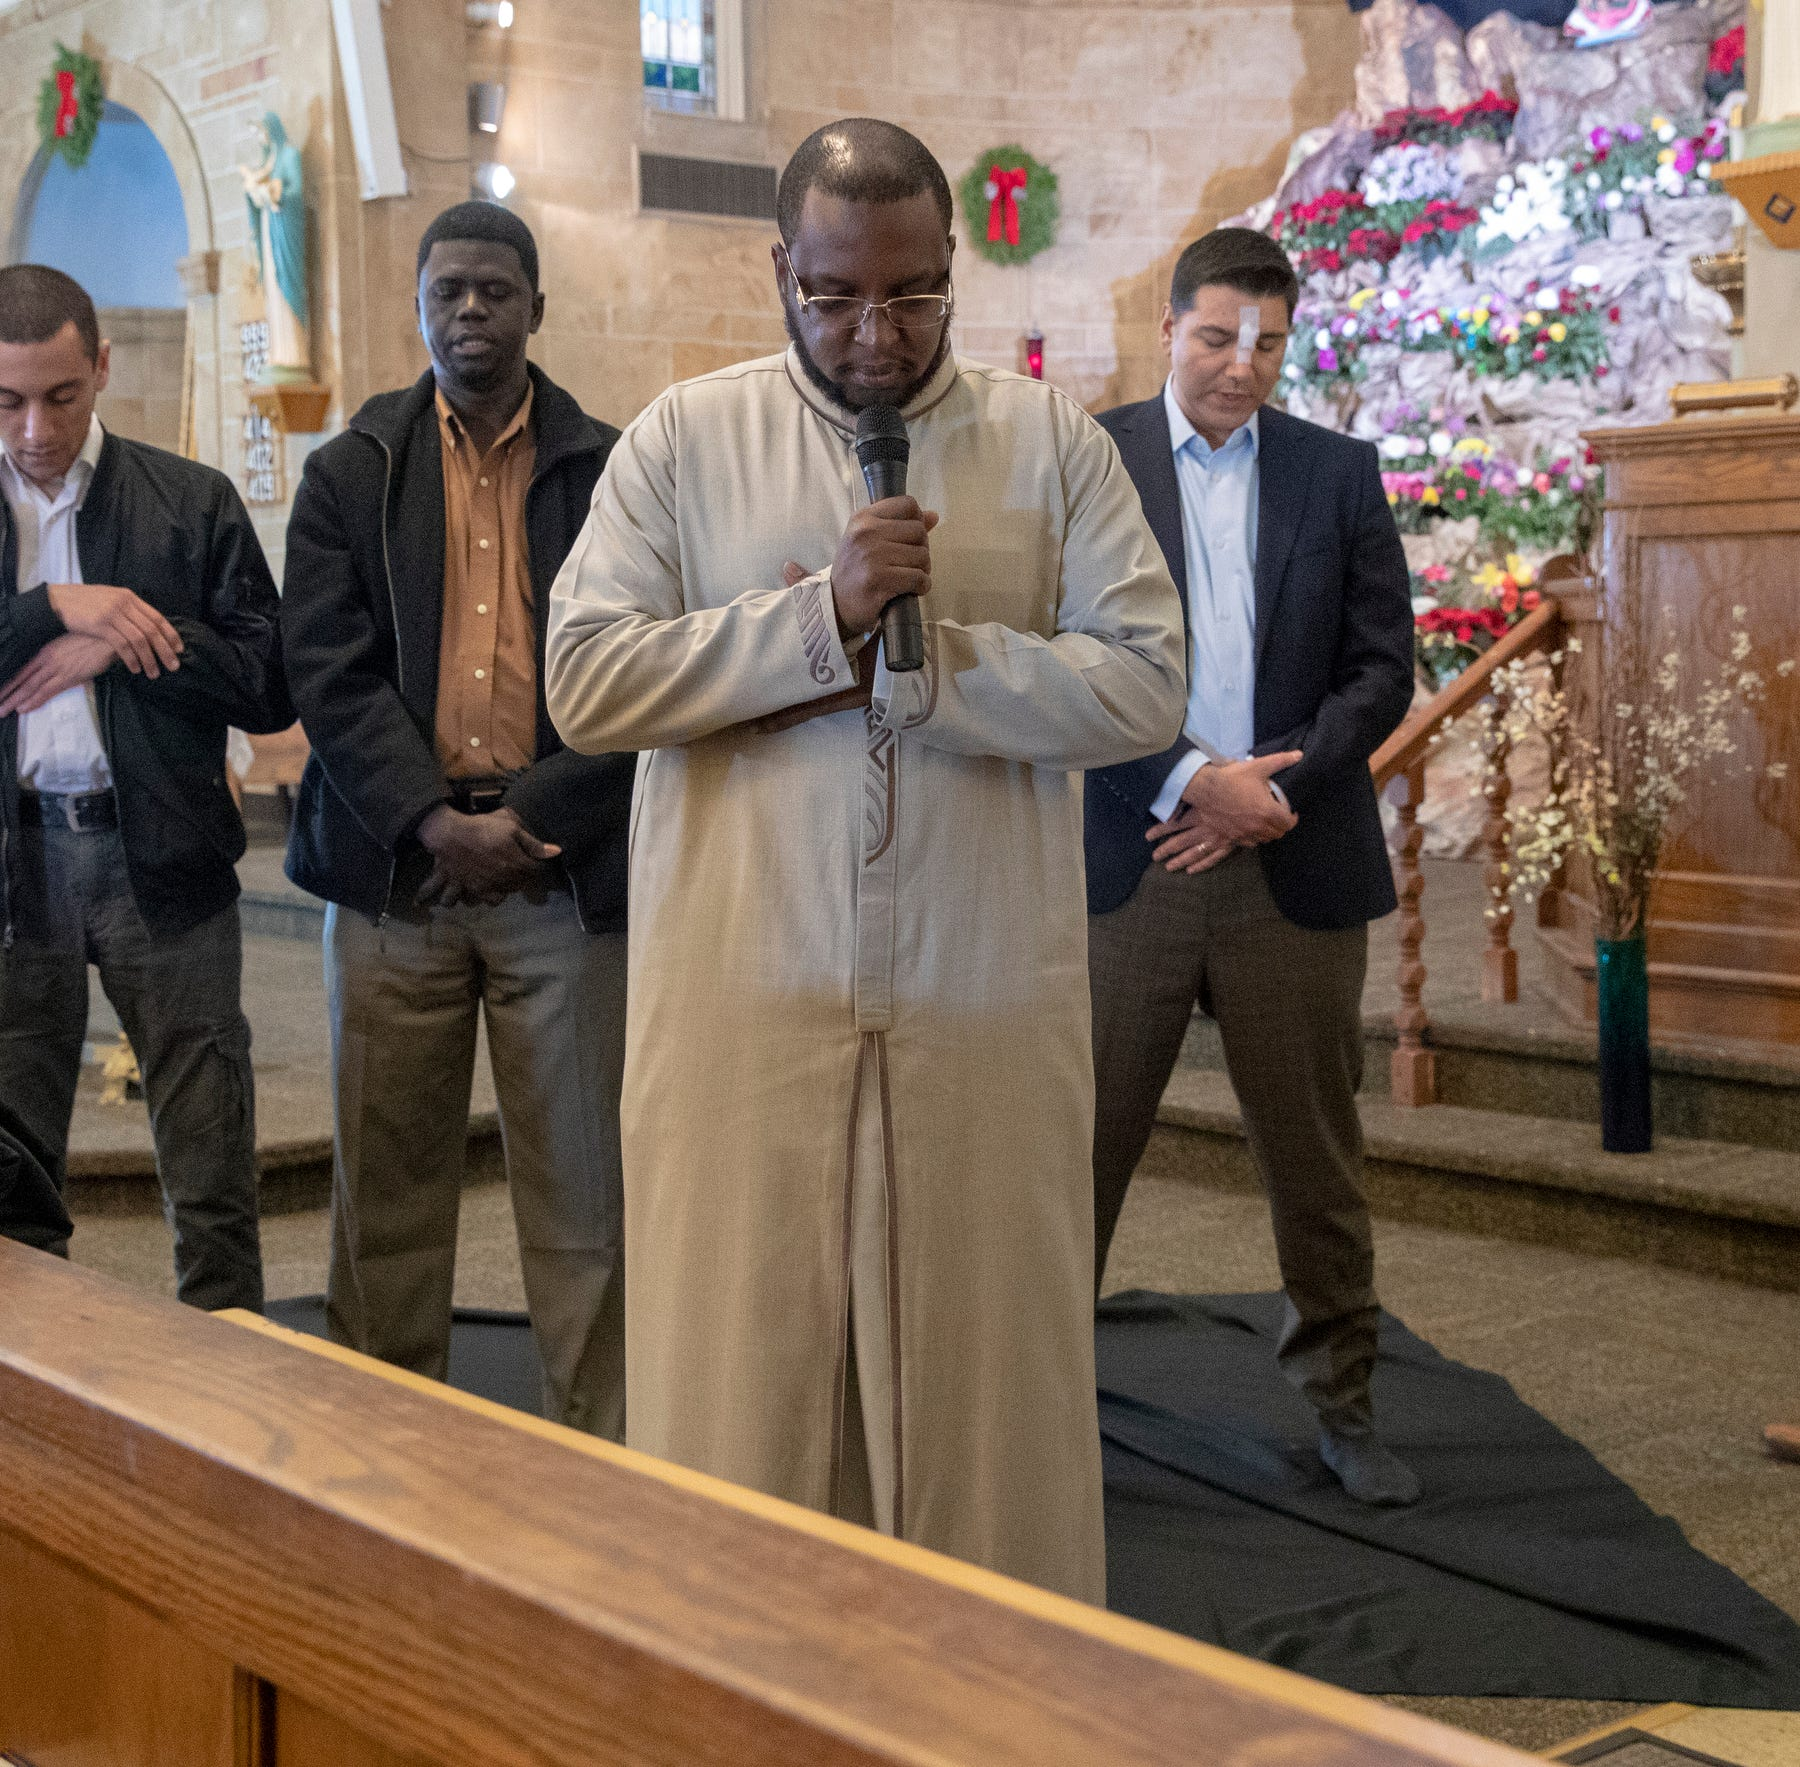 Muslim-Christian service at Indianapolis church 'doesn't happen anywhere else'